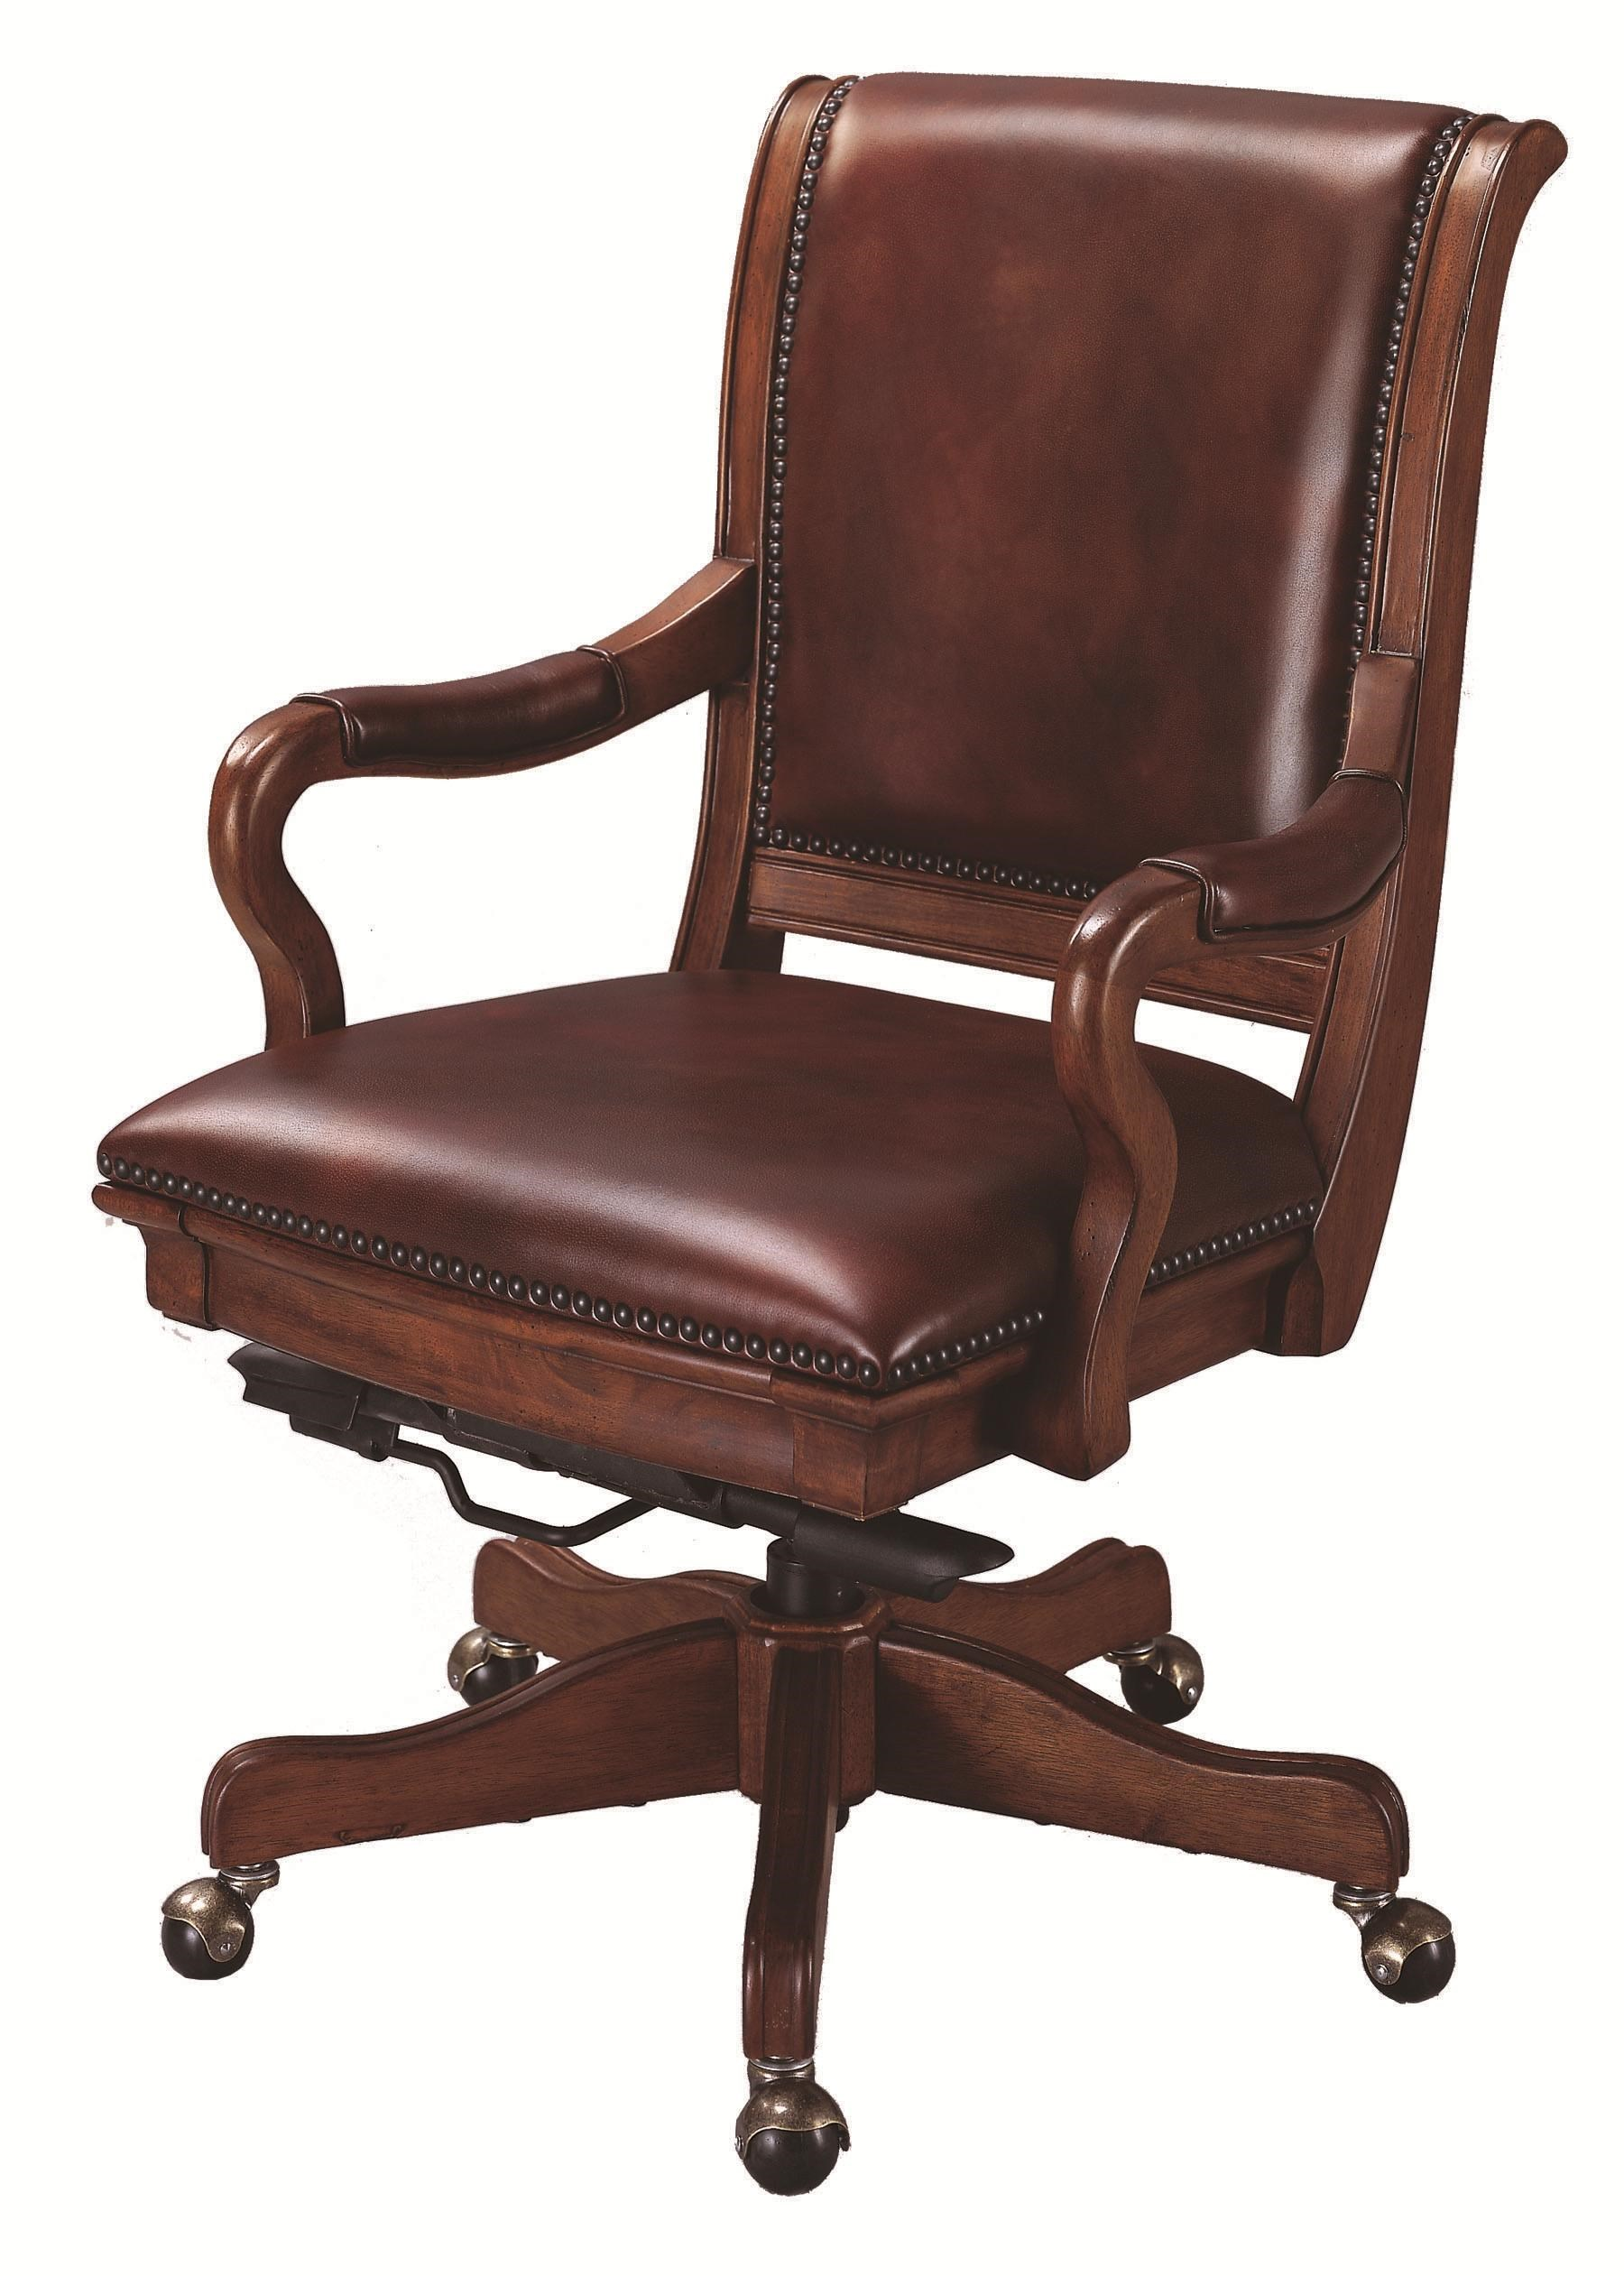 Attirant Richmond Leather Upholstered Caster Office Chair With Adjustable Seat  Height And Knee Tilt Features By Aspenhome